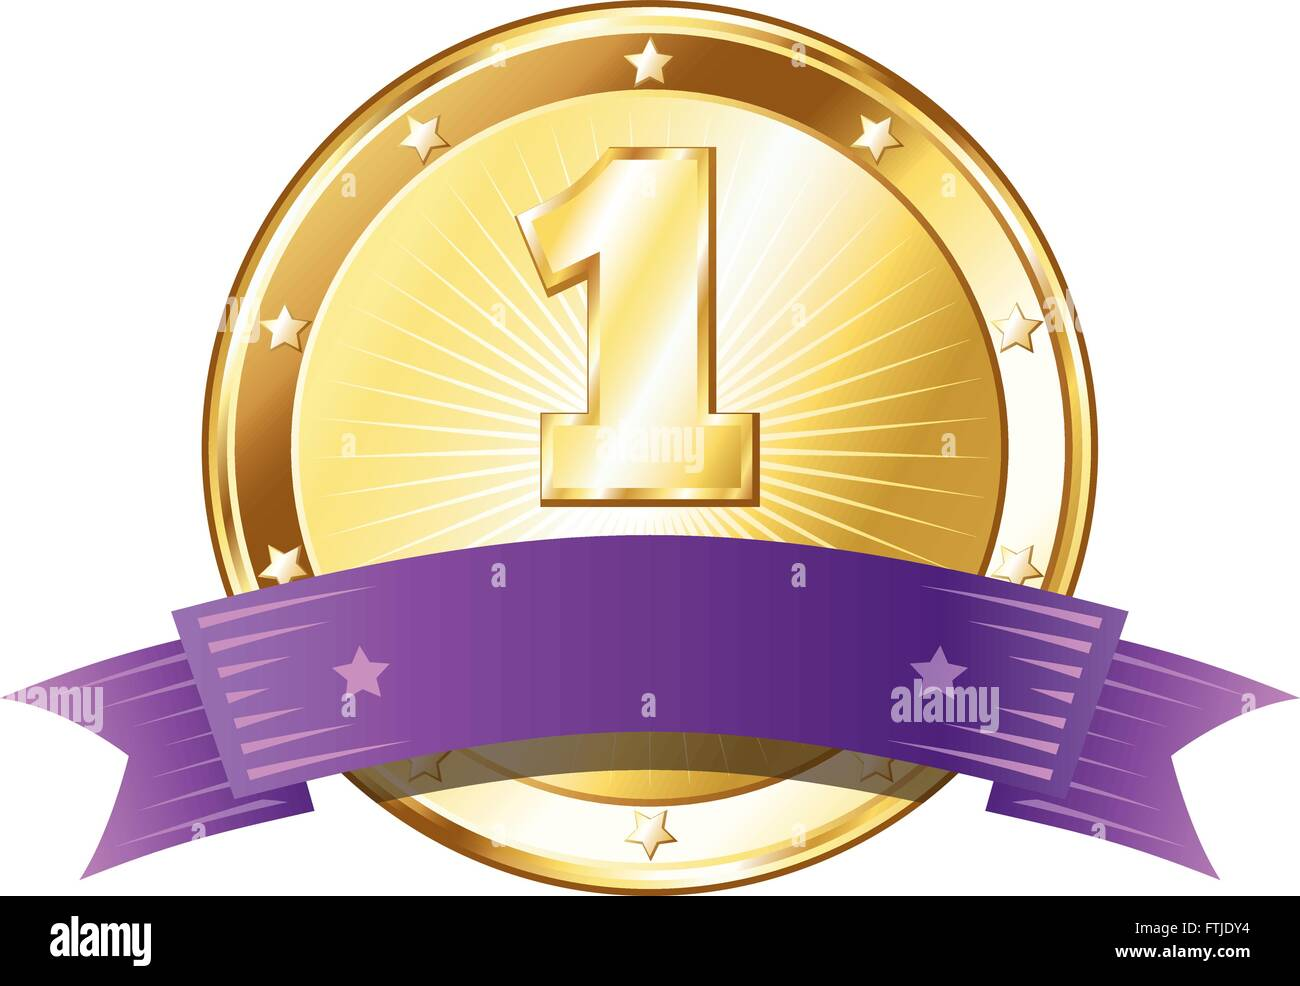 Round circle shaped metal badge / seal of approval in a gold look with a purple ribbon and the number one. - Stock Vector